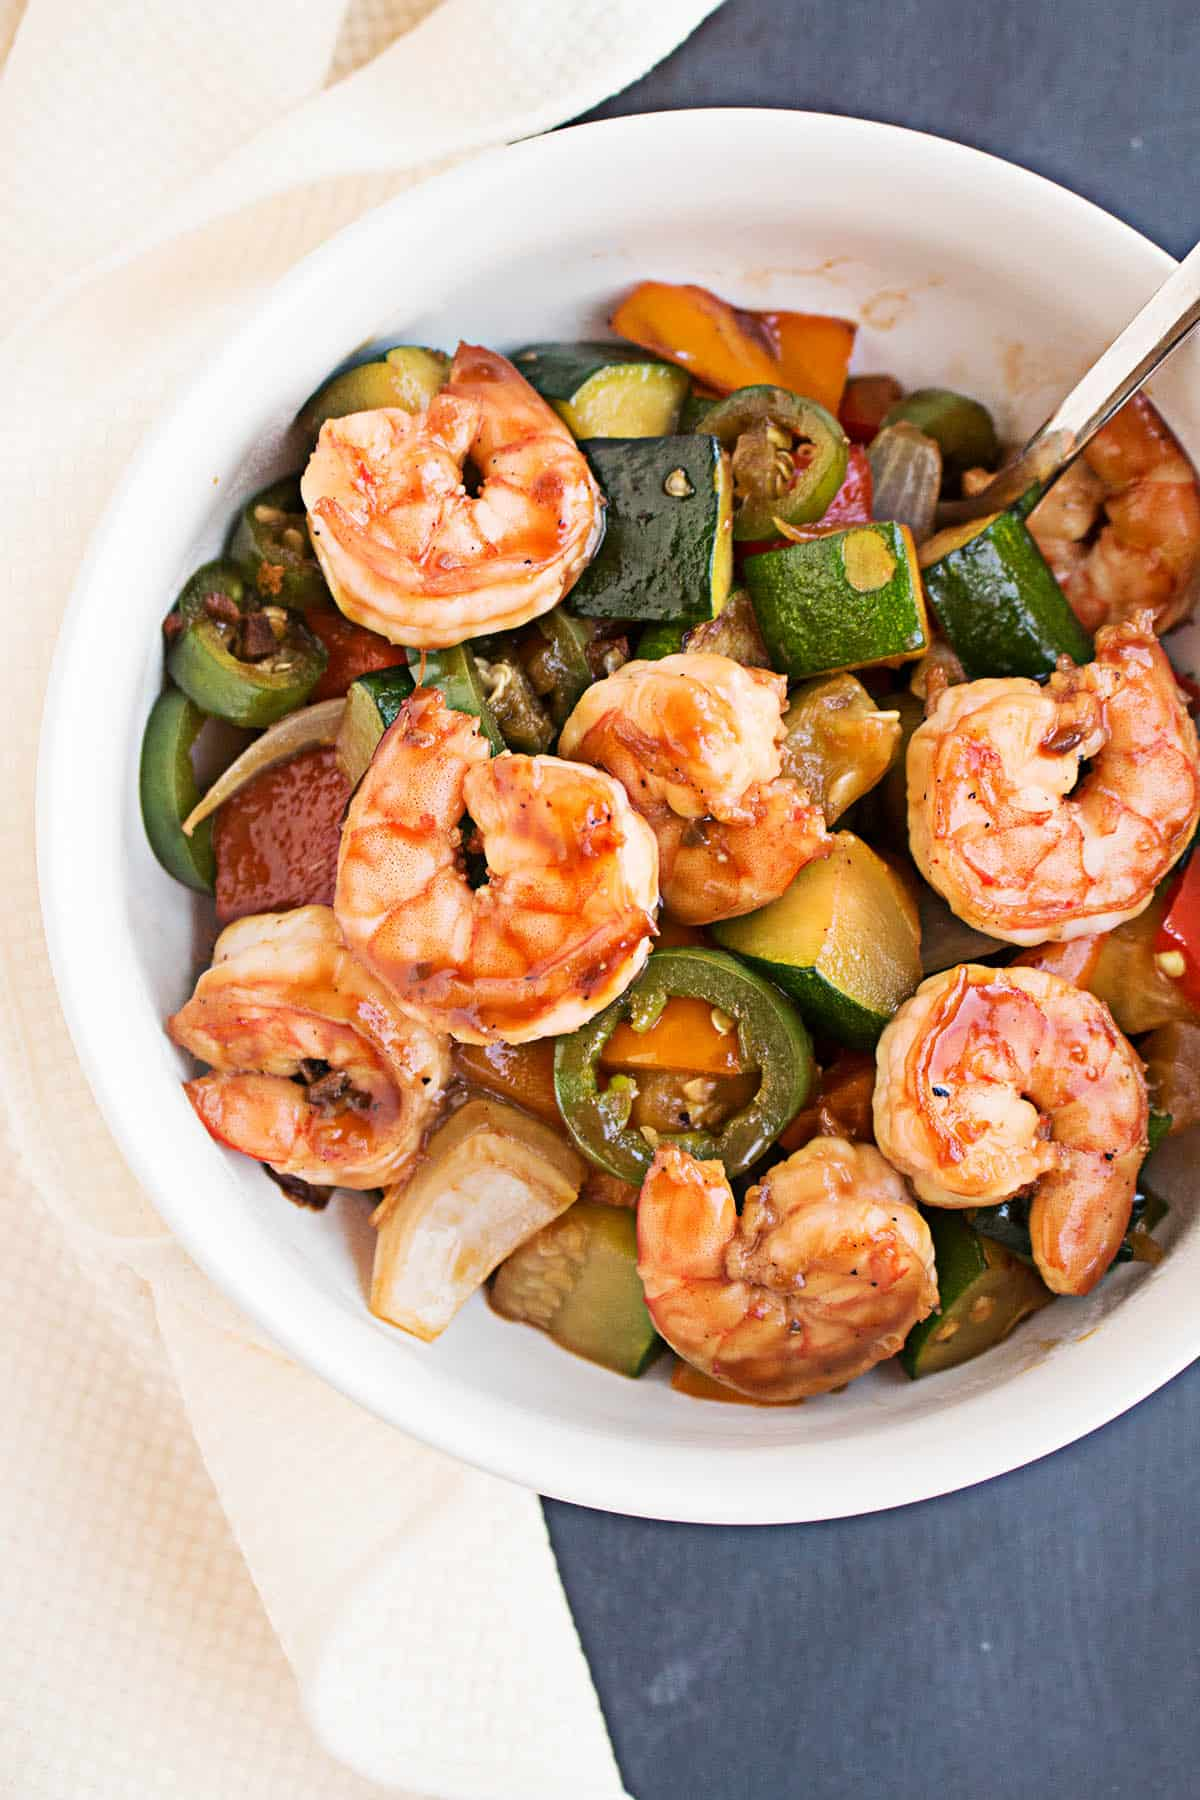 Spicy Teriyaki Shrimp Stir Fry